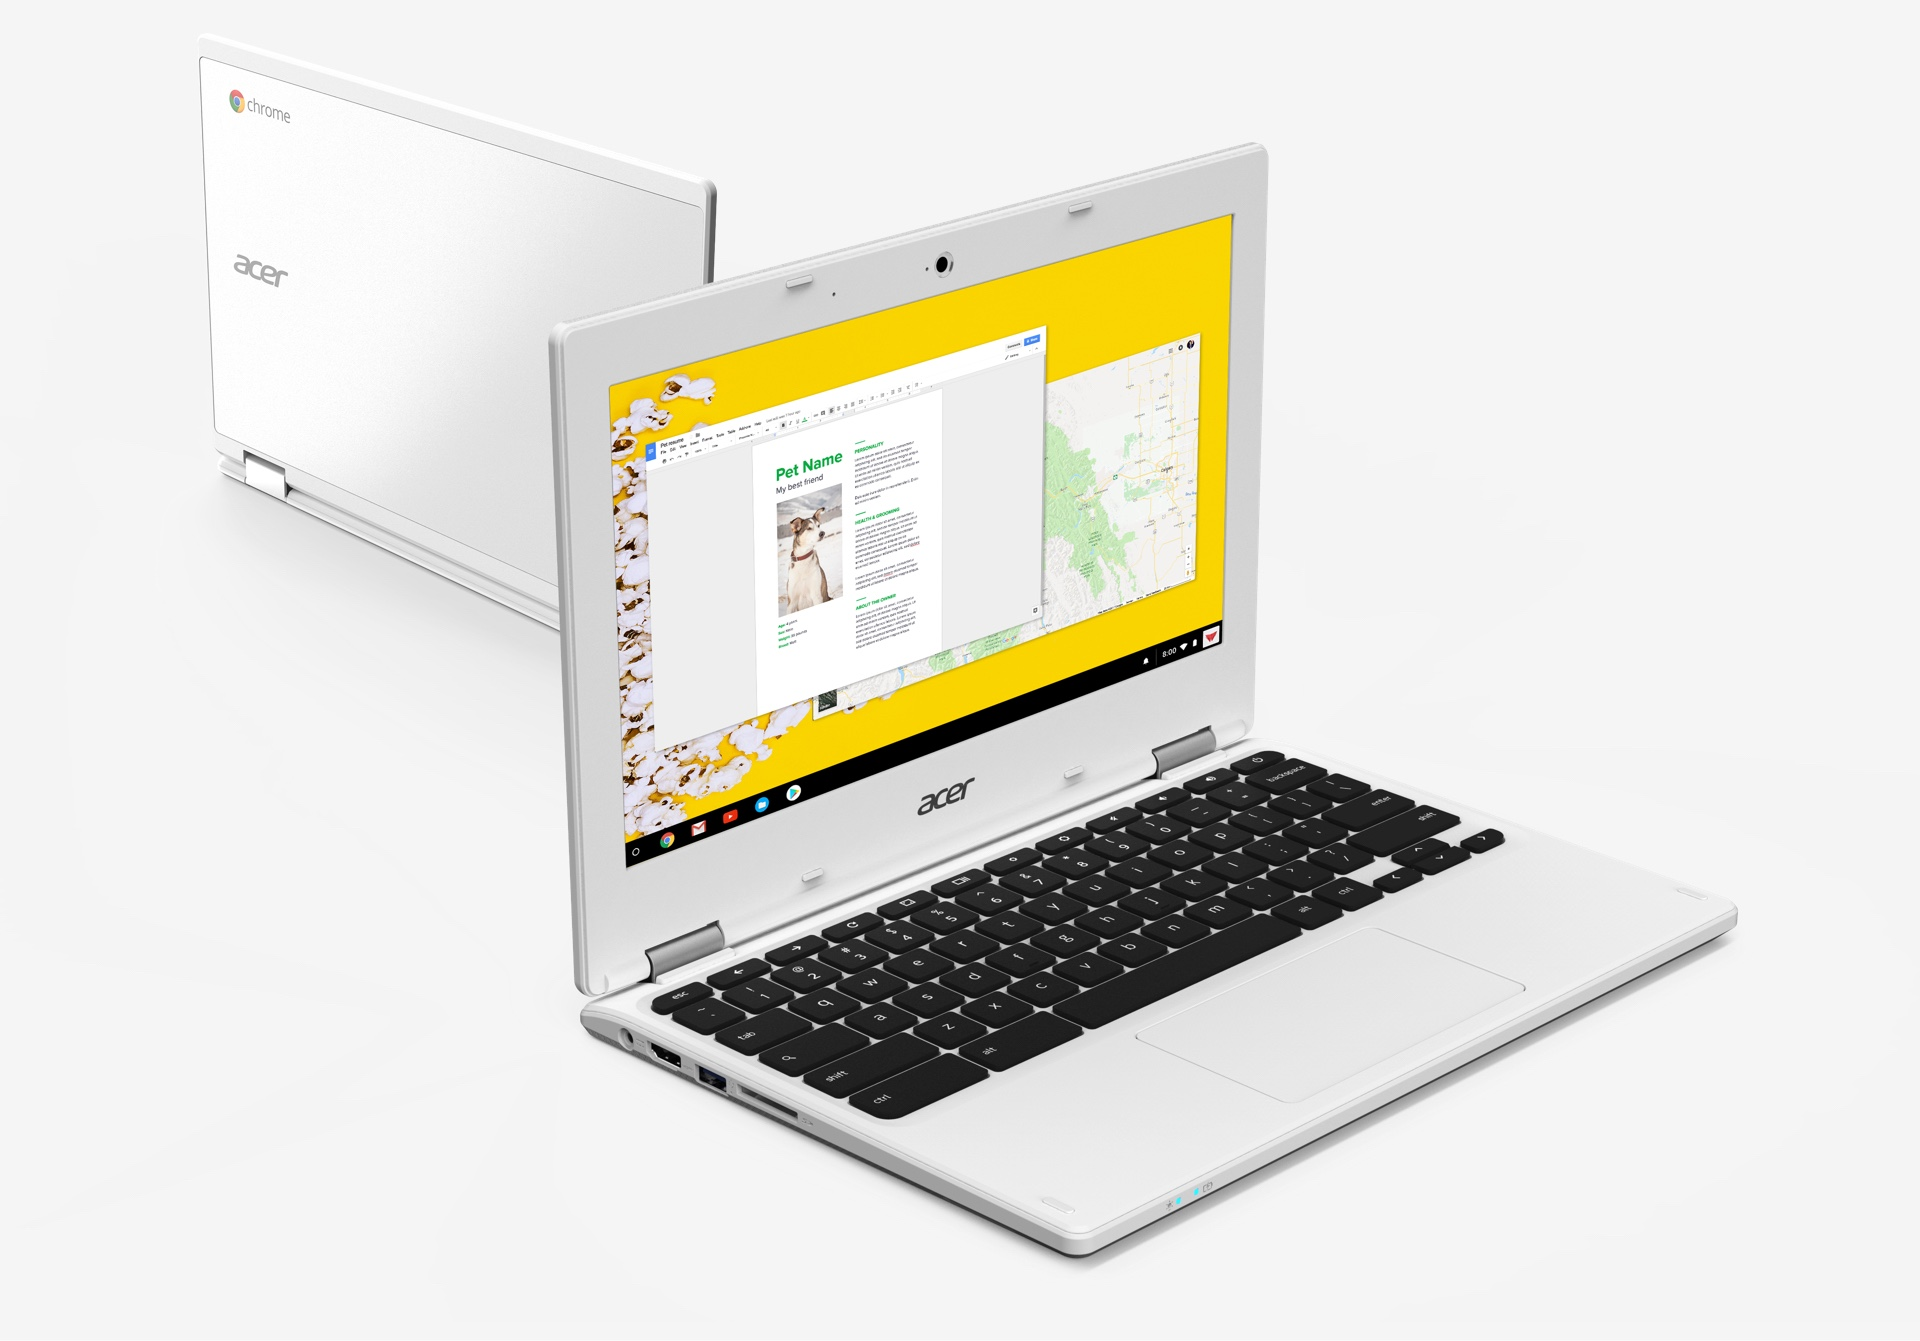 Chromebook 11 CB3-132 design ksp 03 - Large